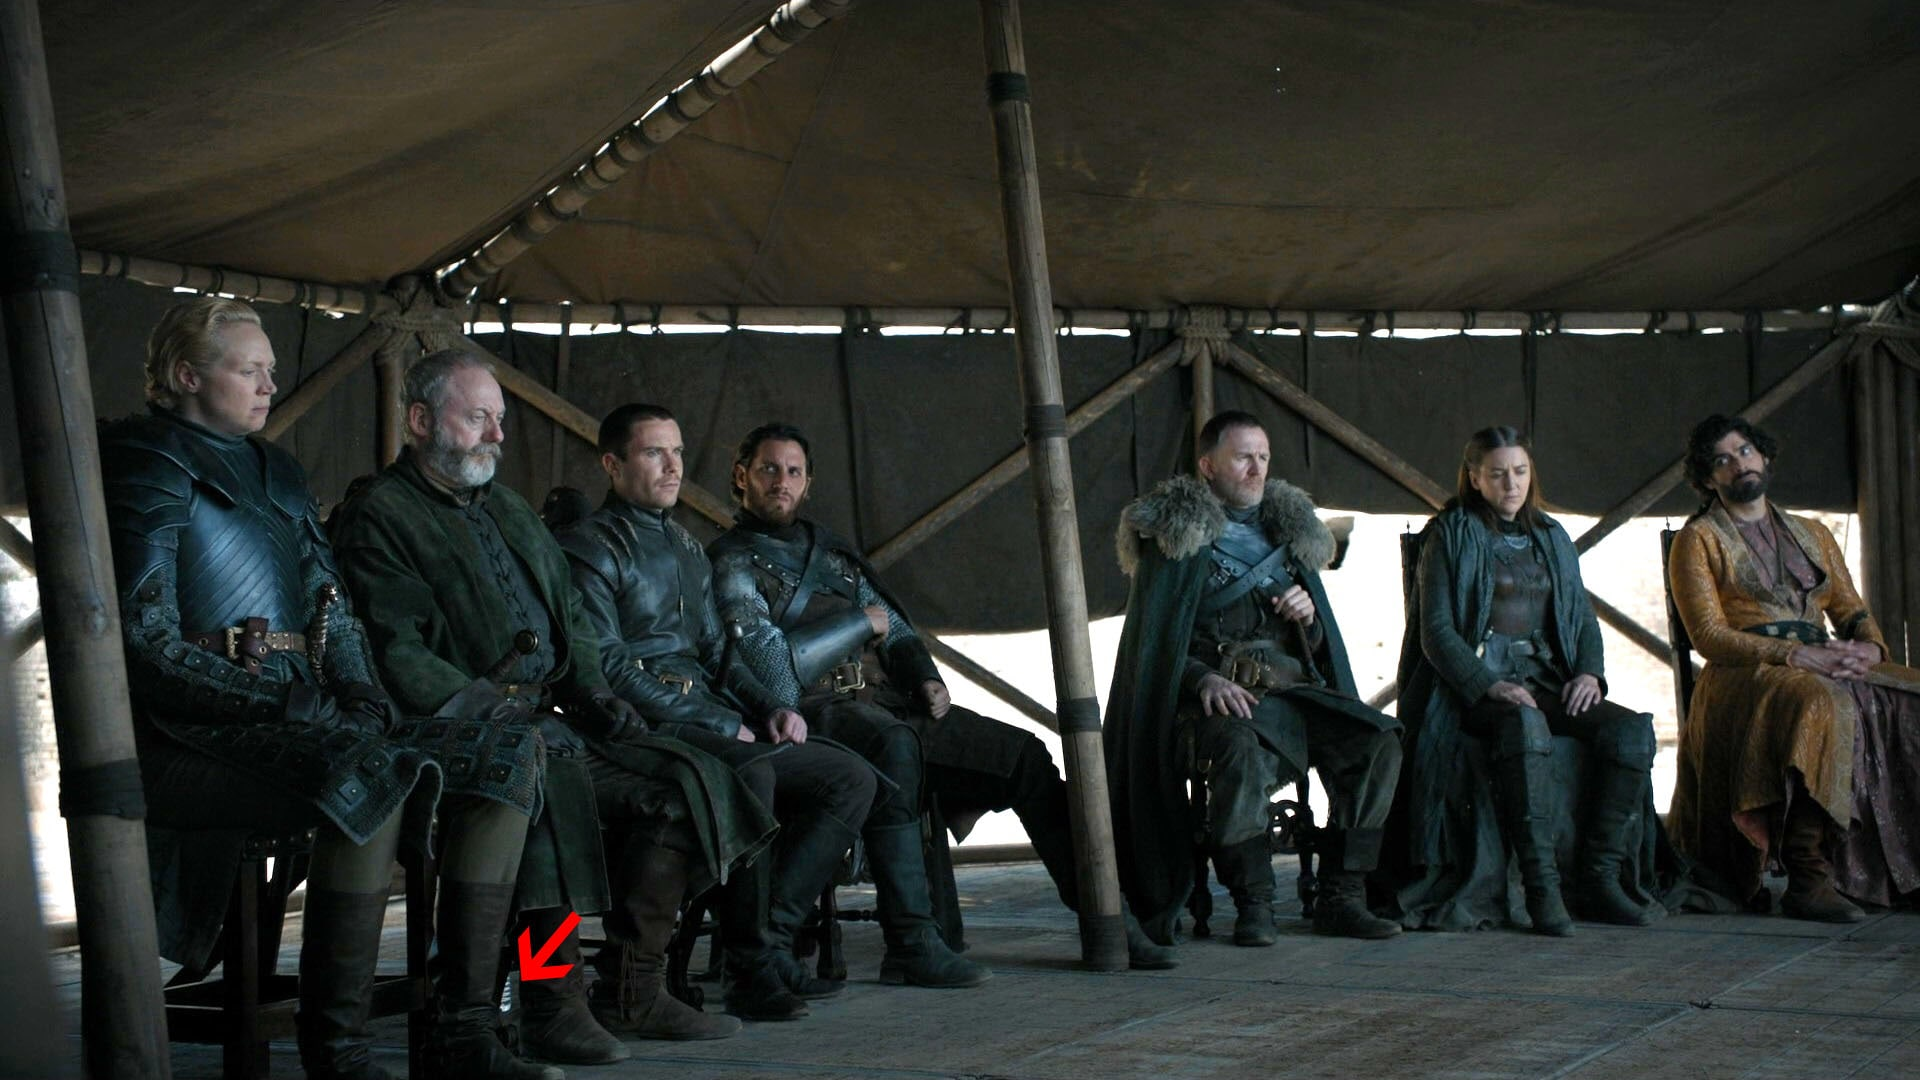 Game Of Thrones Season 8 Episode 6 Included Plastic Water Bottles By Mistake Entertainment News